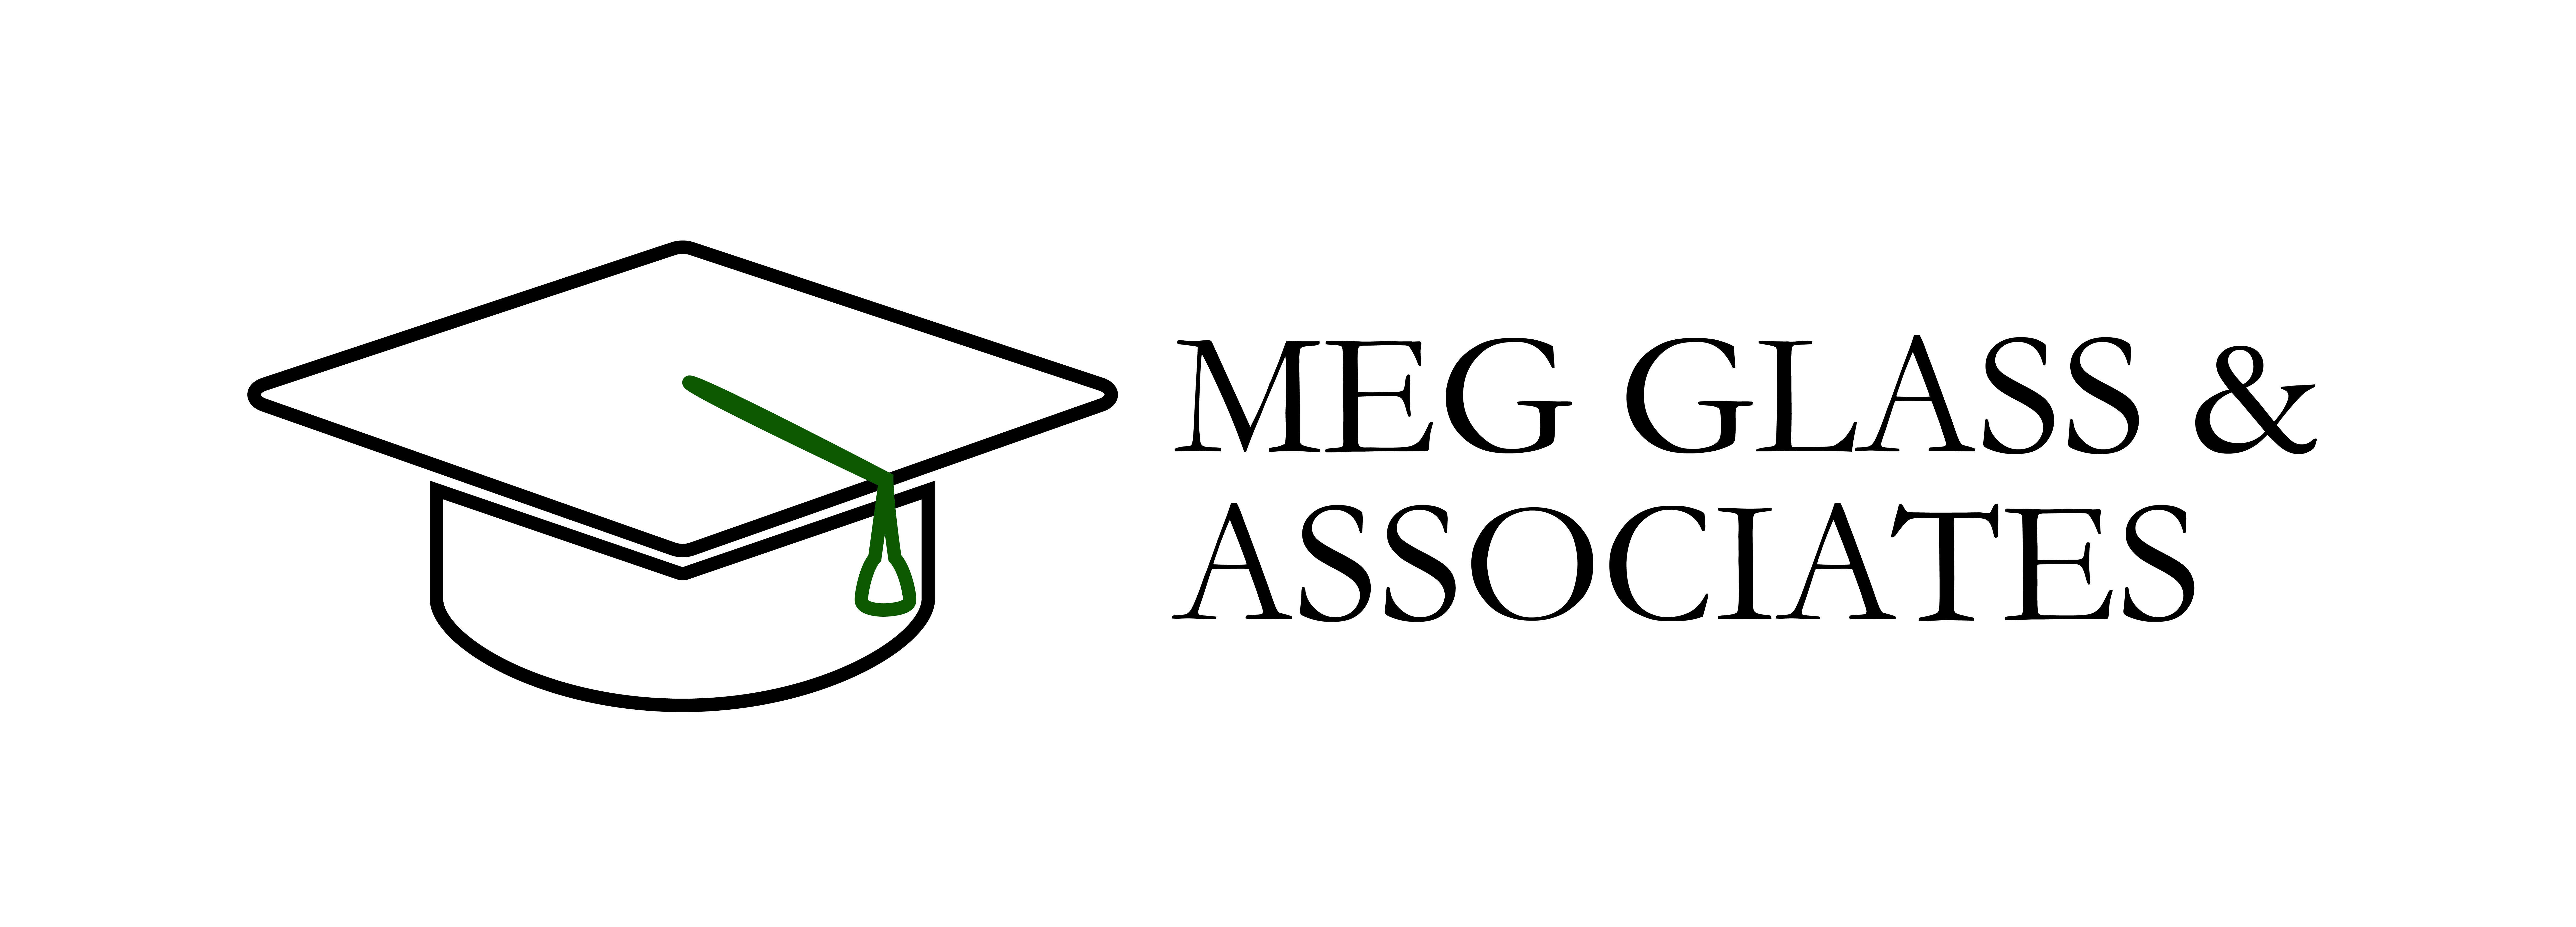 College Resume  Personal Statement  Supplement Essay and Application Help Meg Glass   Associates